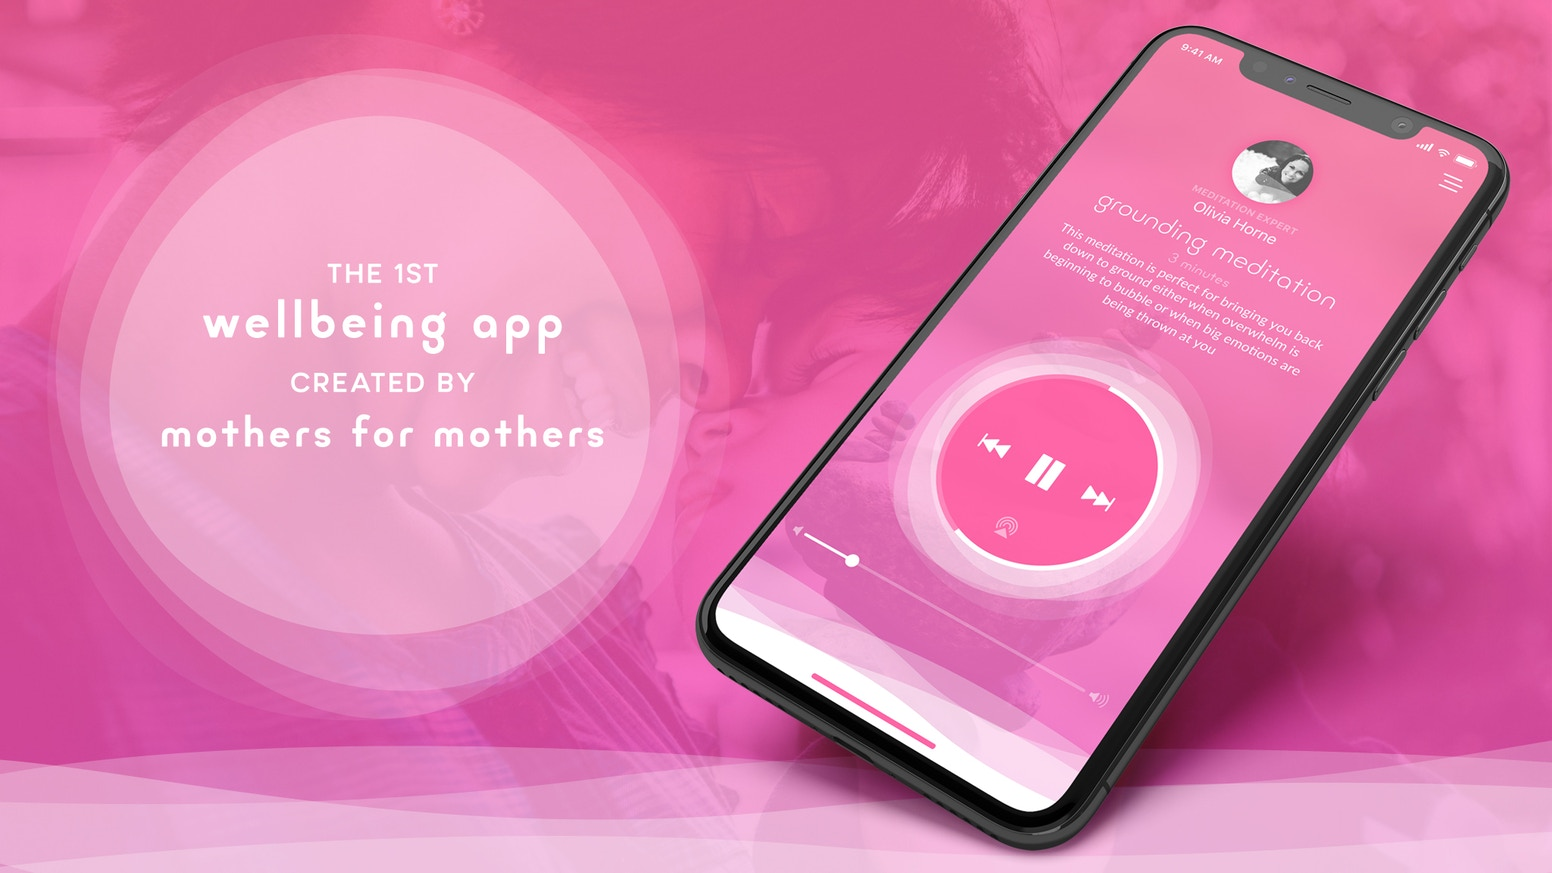 Nourish: the 1st wellbeing app created by mothers 4 mothers by Sara Campin  — Kickstarter